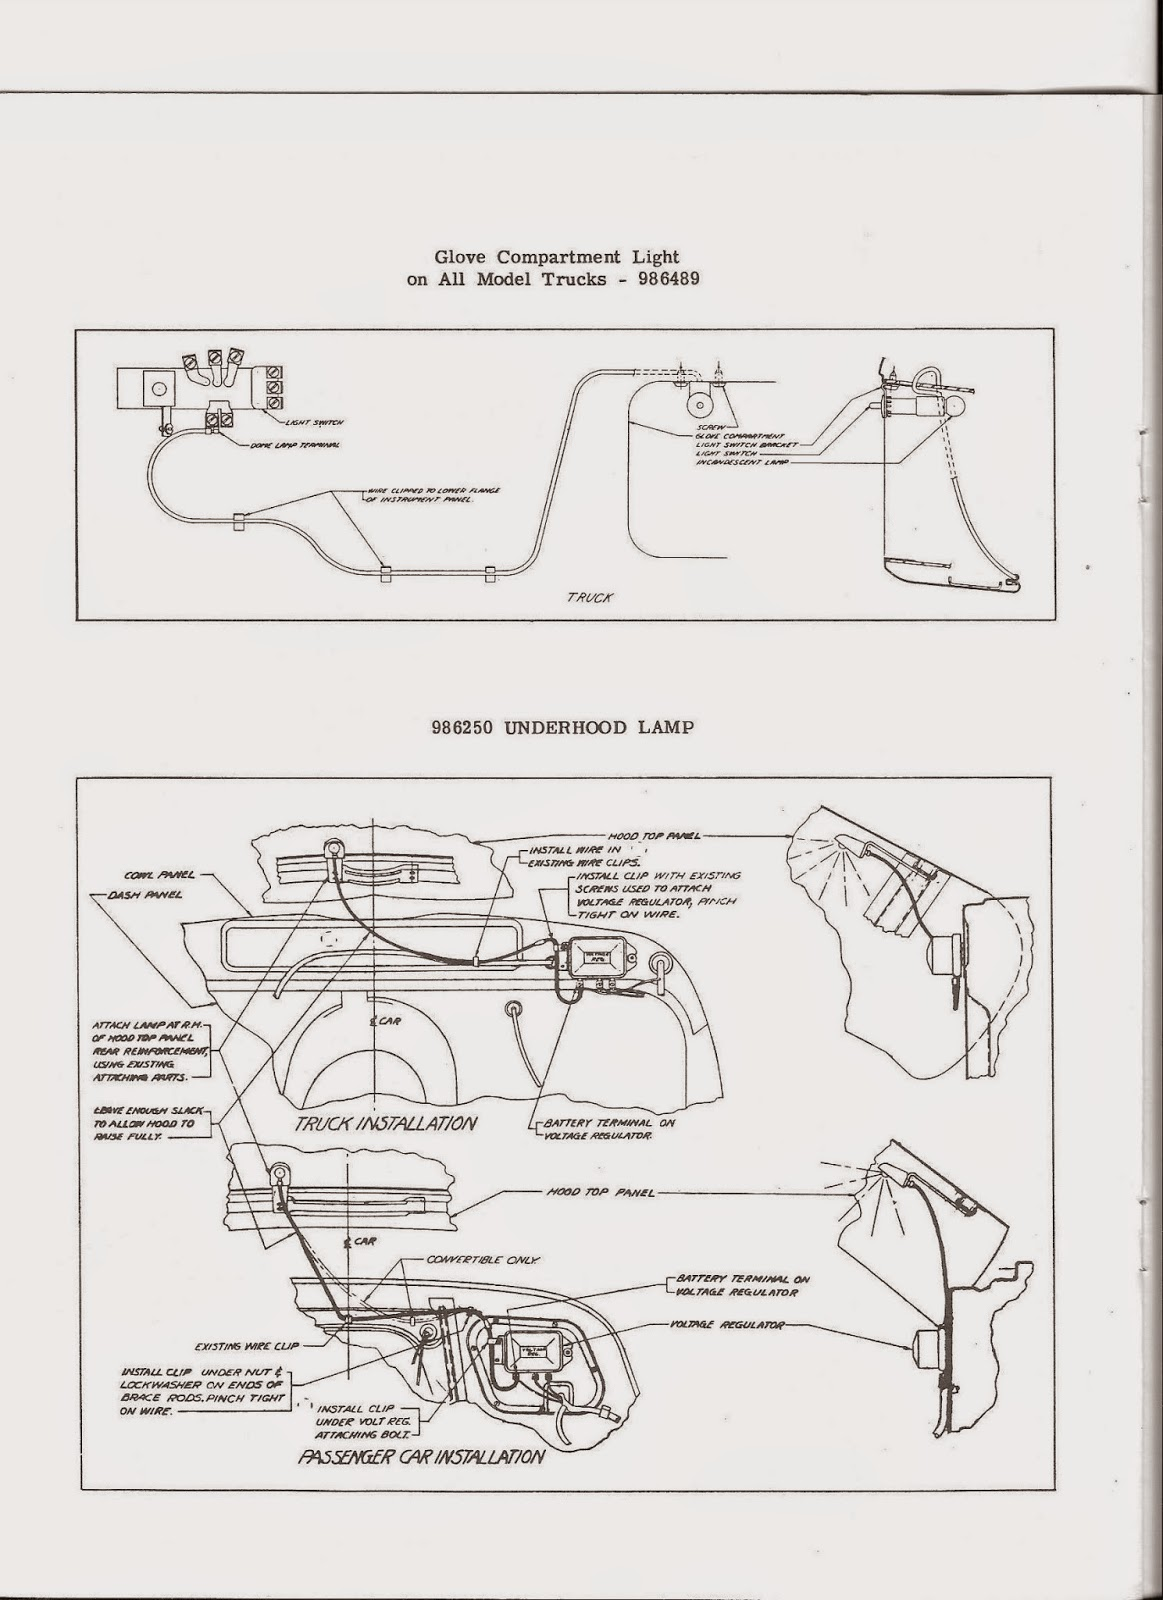 Gray Ghost 1953 Chevy 3100 Technical Information Page Additional Wiring Diagram For The Chevrolet Passenger Cars Convertible Glove Compartment Underhood Lamp